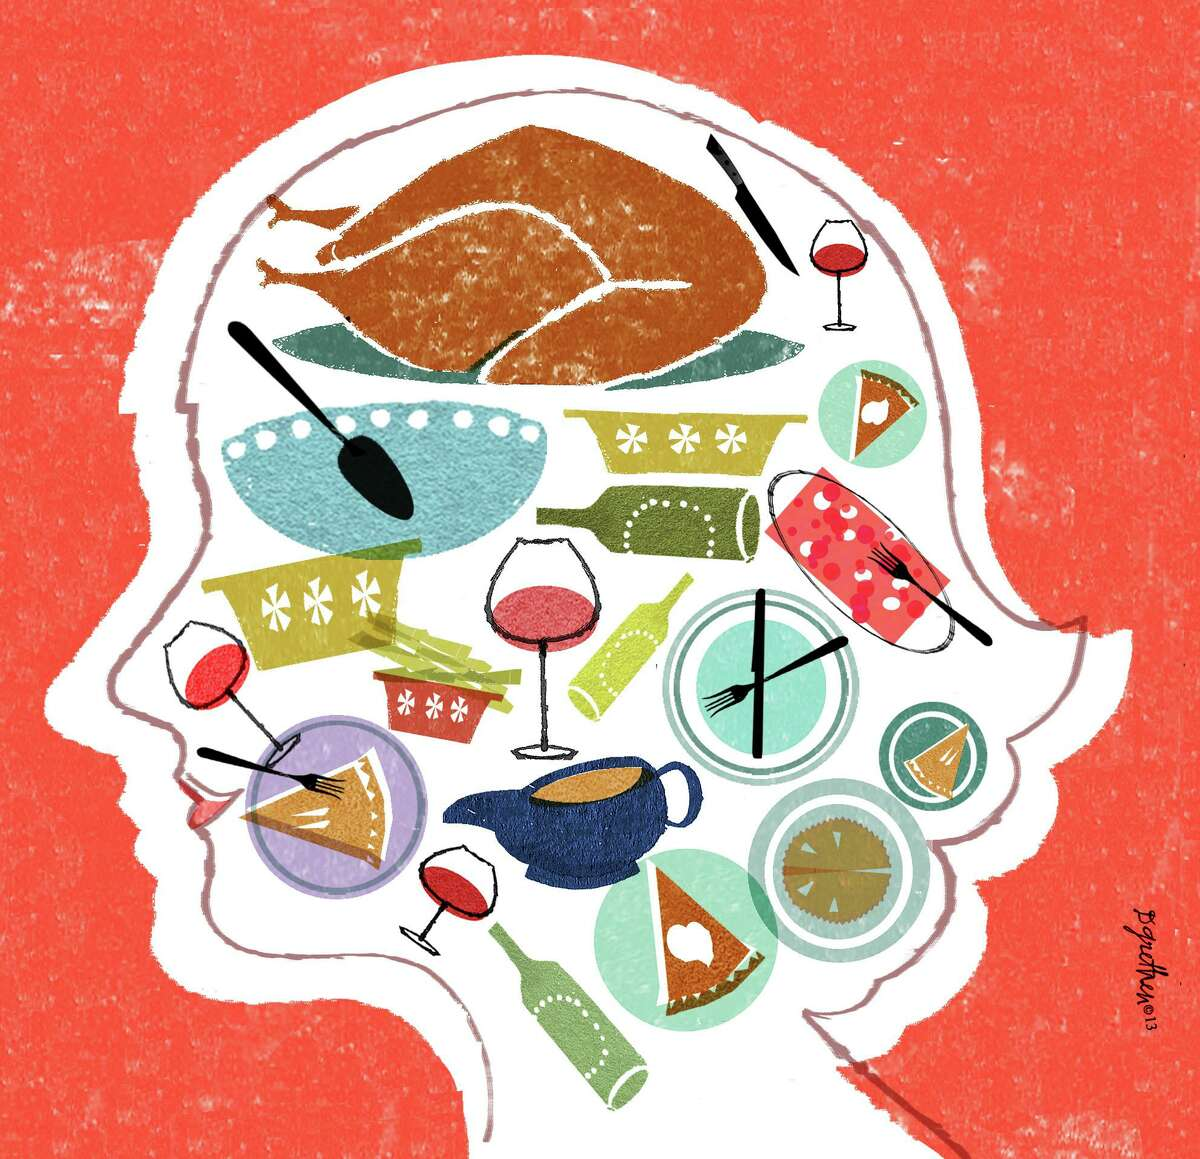 Illustration for op-ed about eating disorder during holidays